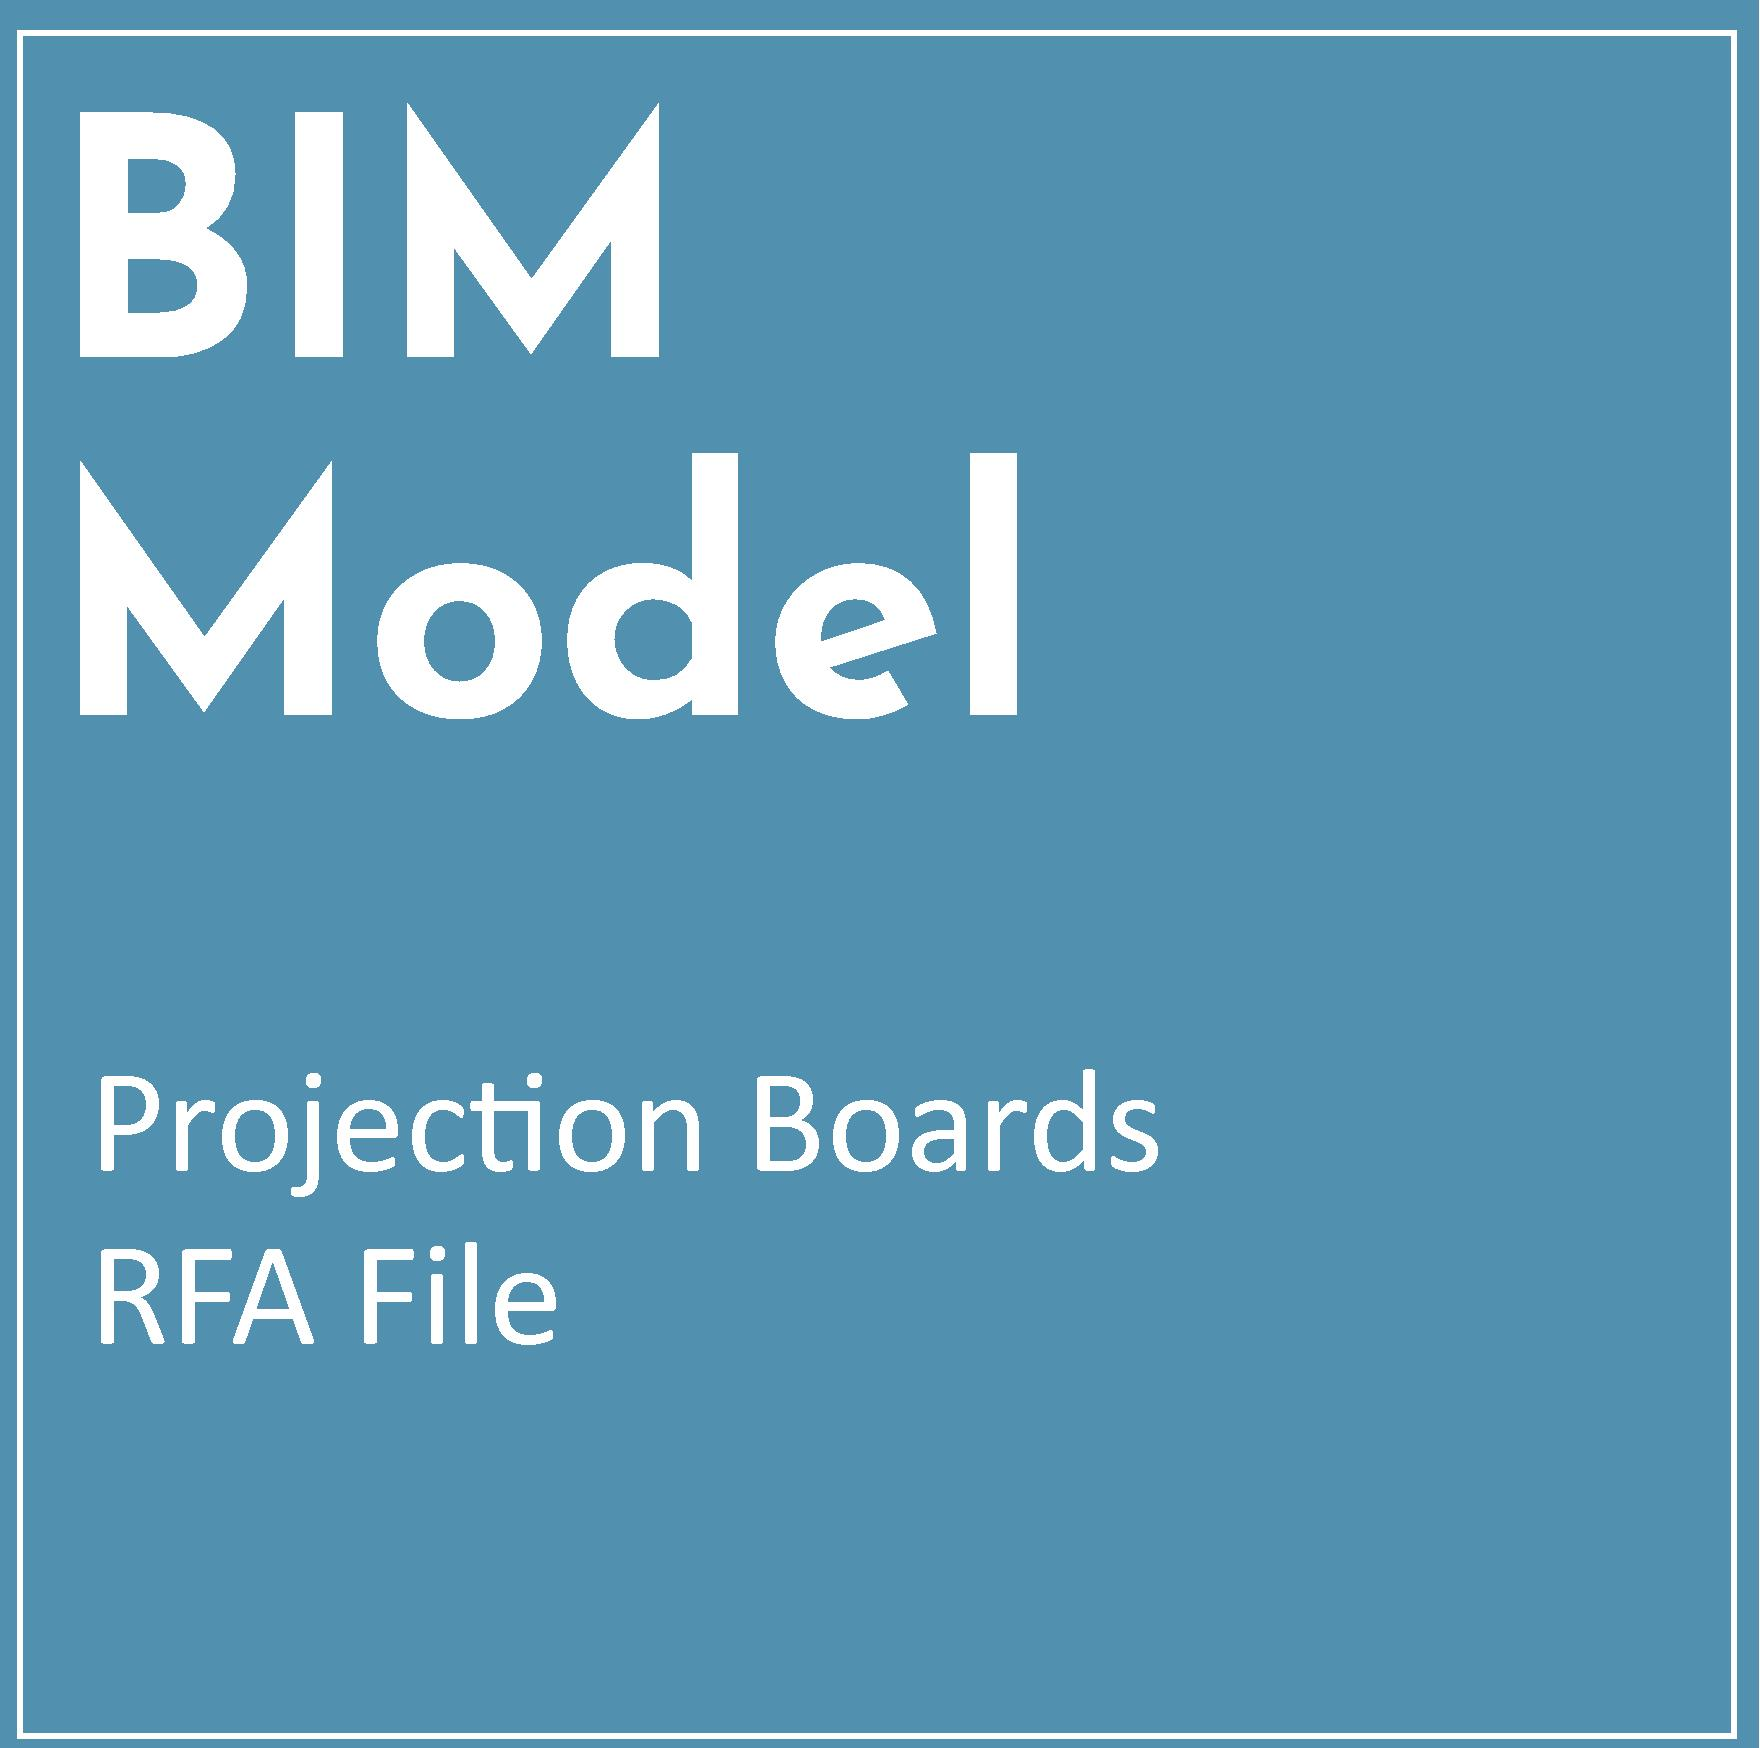 RFA BIM Model – Projection Boards